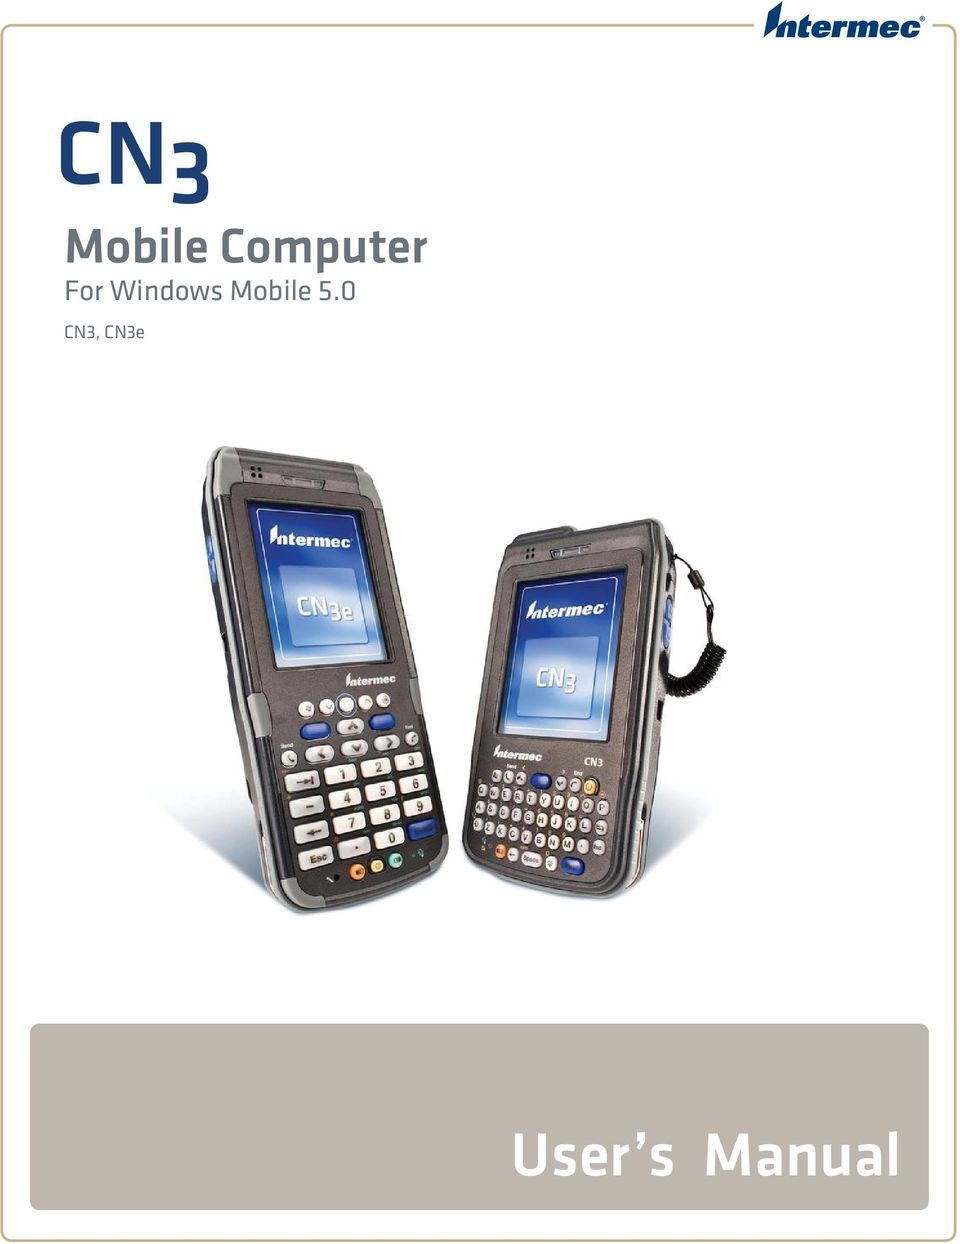 cn3 mobile computer user s manual for windows mobile 5 0 cn3 rh docplayer net Windows Mobile 2 Windows Mobile 7